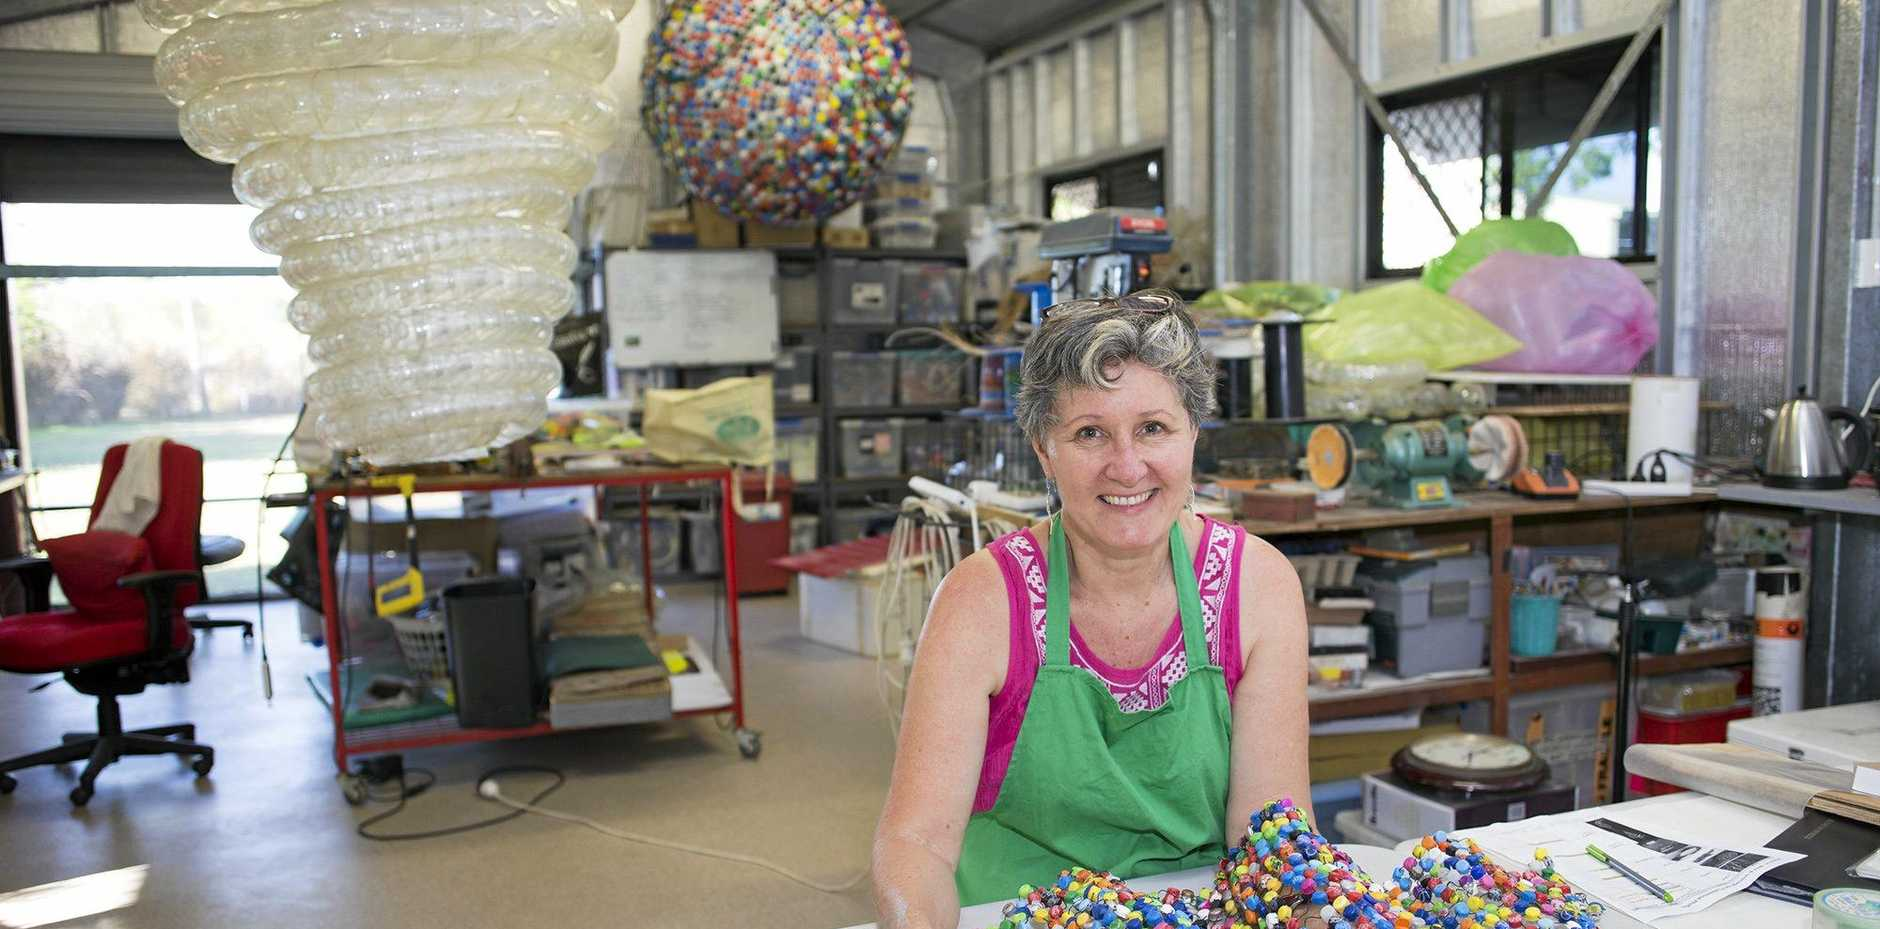 Moranbah Coalface Art Gallery to host Wanton, Wild & Unimagined; a playful exhibition, by artist Alison McDonald (pictured in her studio), that stirs the imagination and evokes reflection.